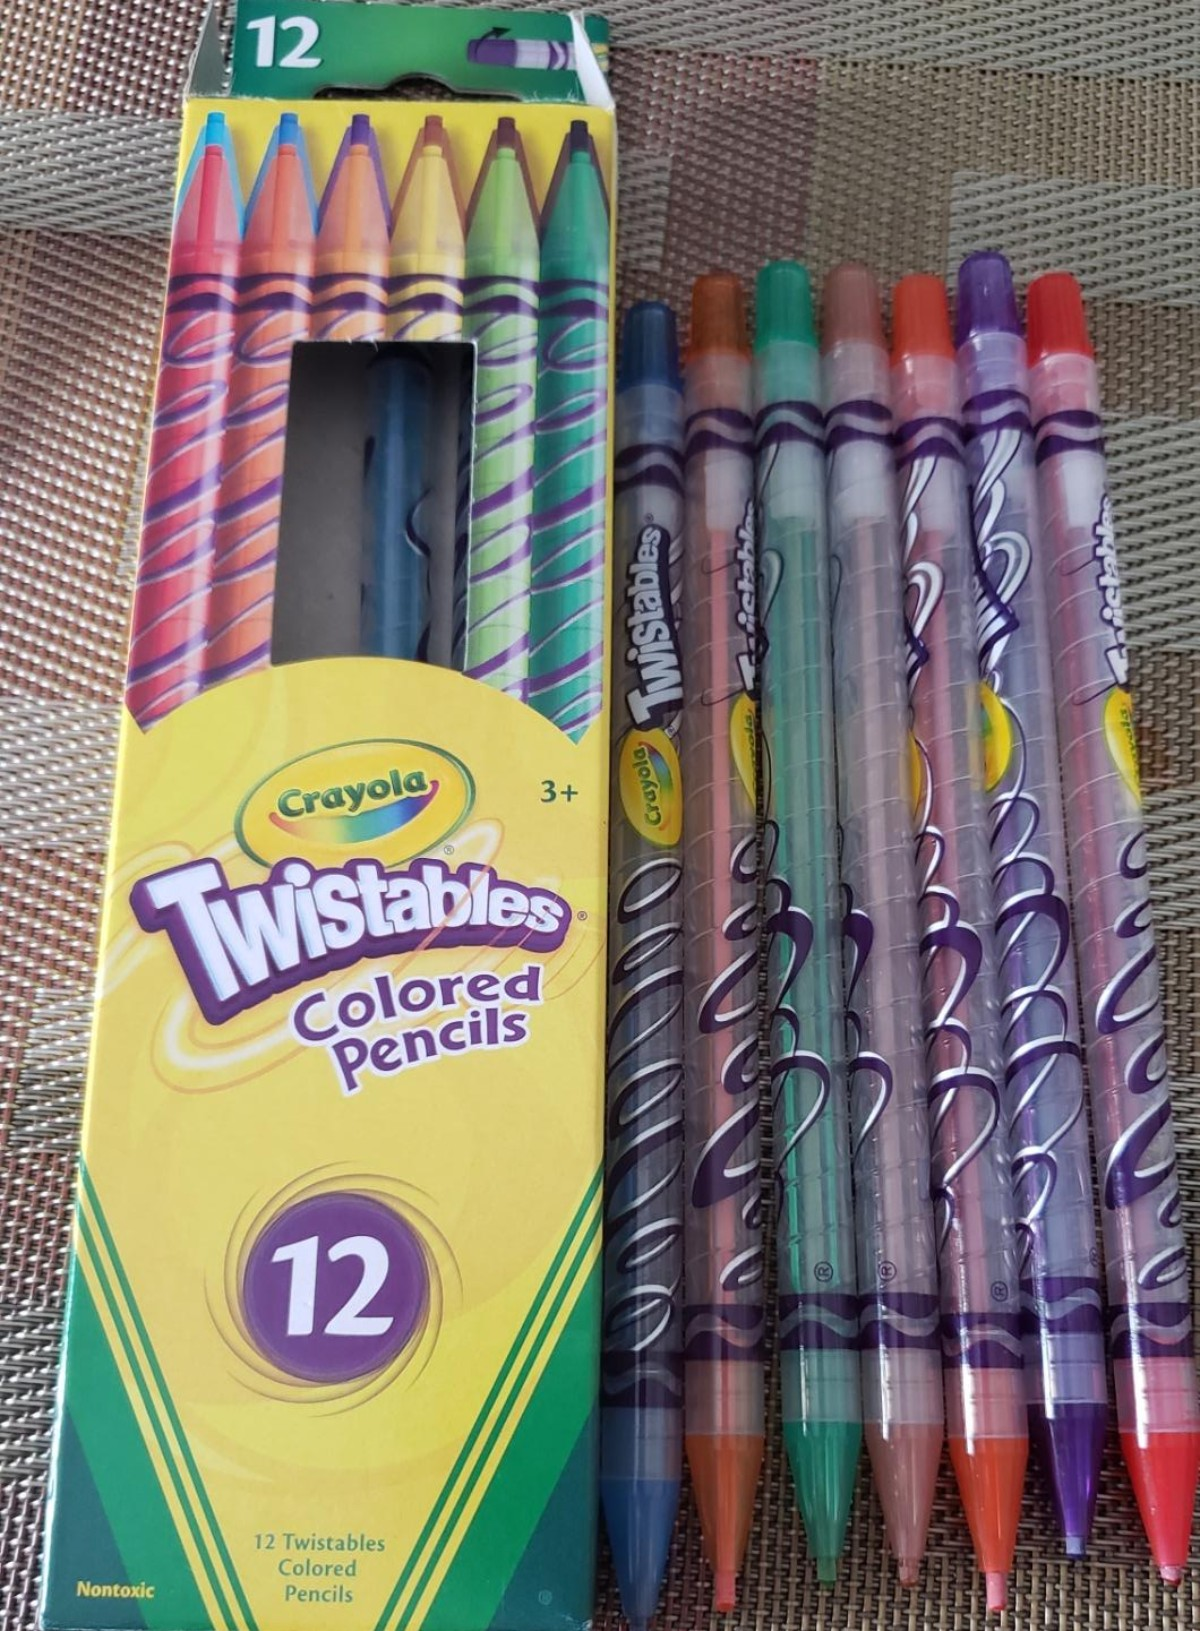 Crayola Twistable colored pencils next to packaging